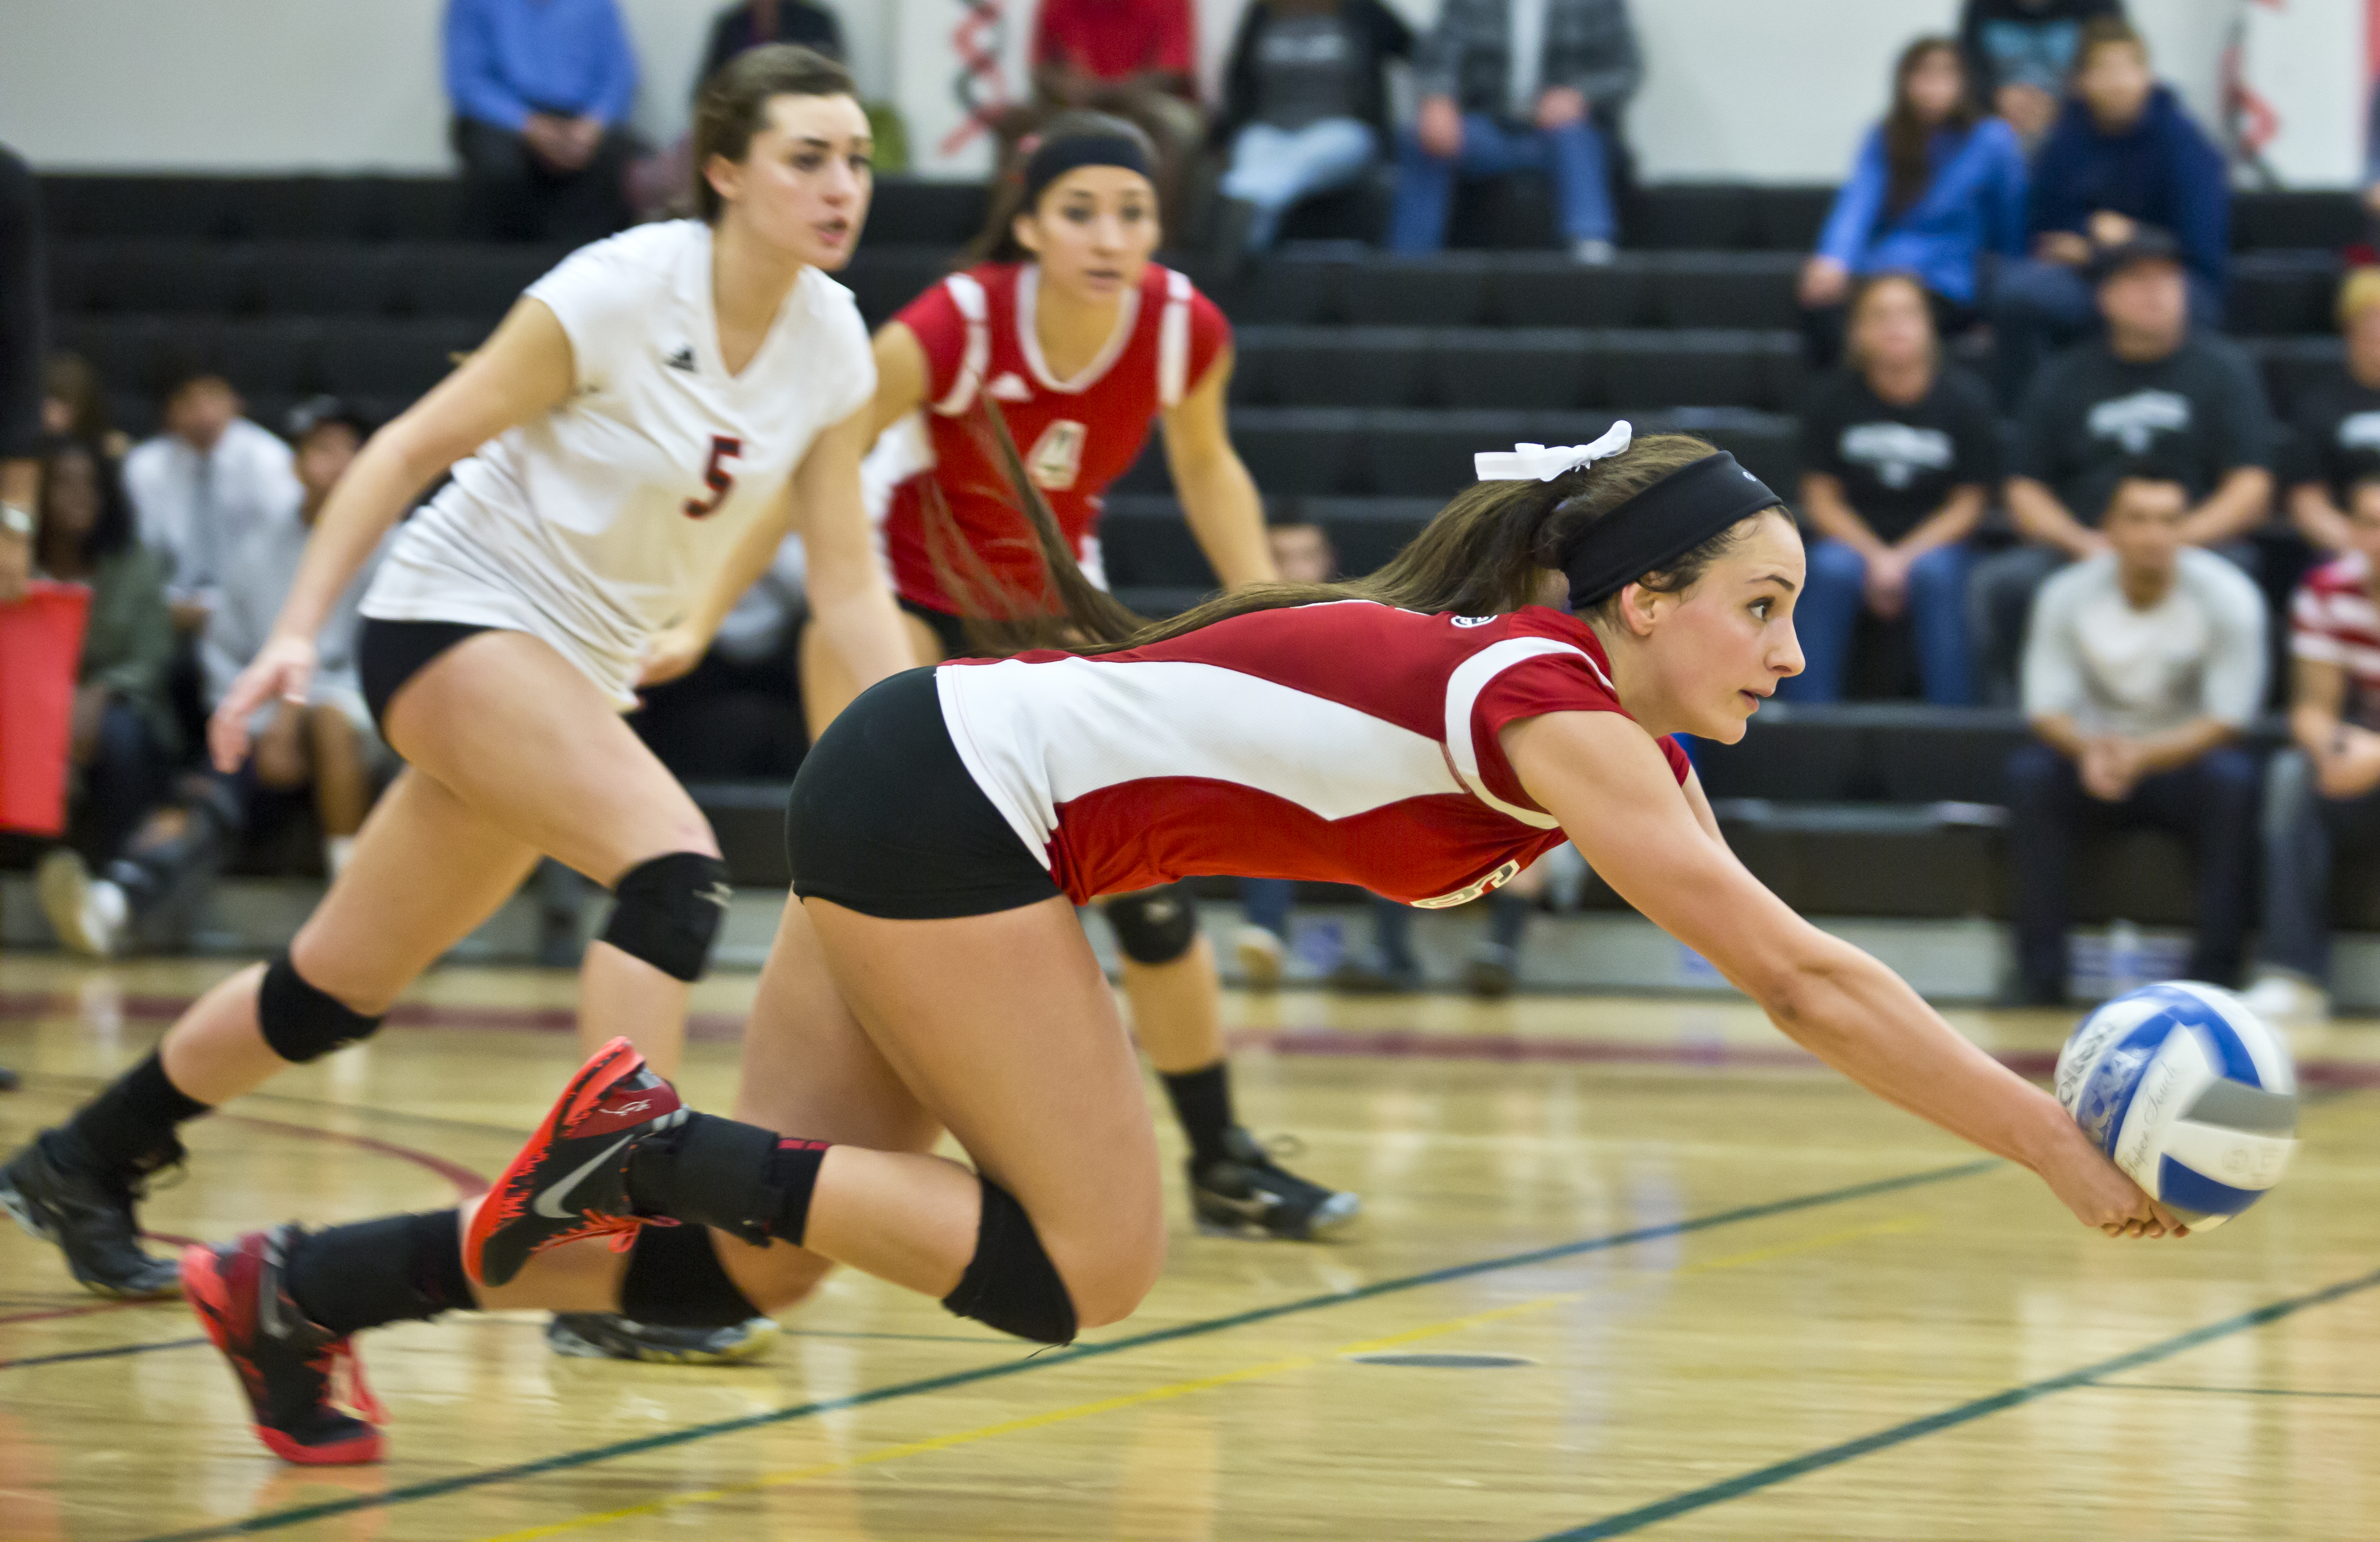 Volleyball team sweeps Hancock in final game of season